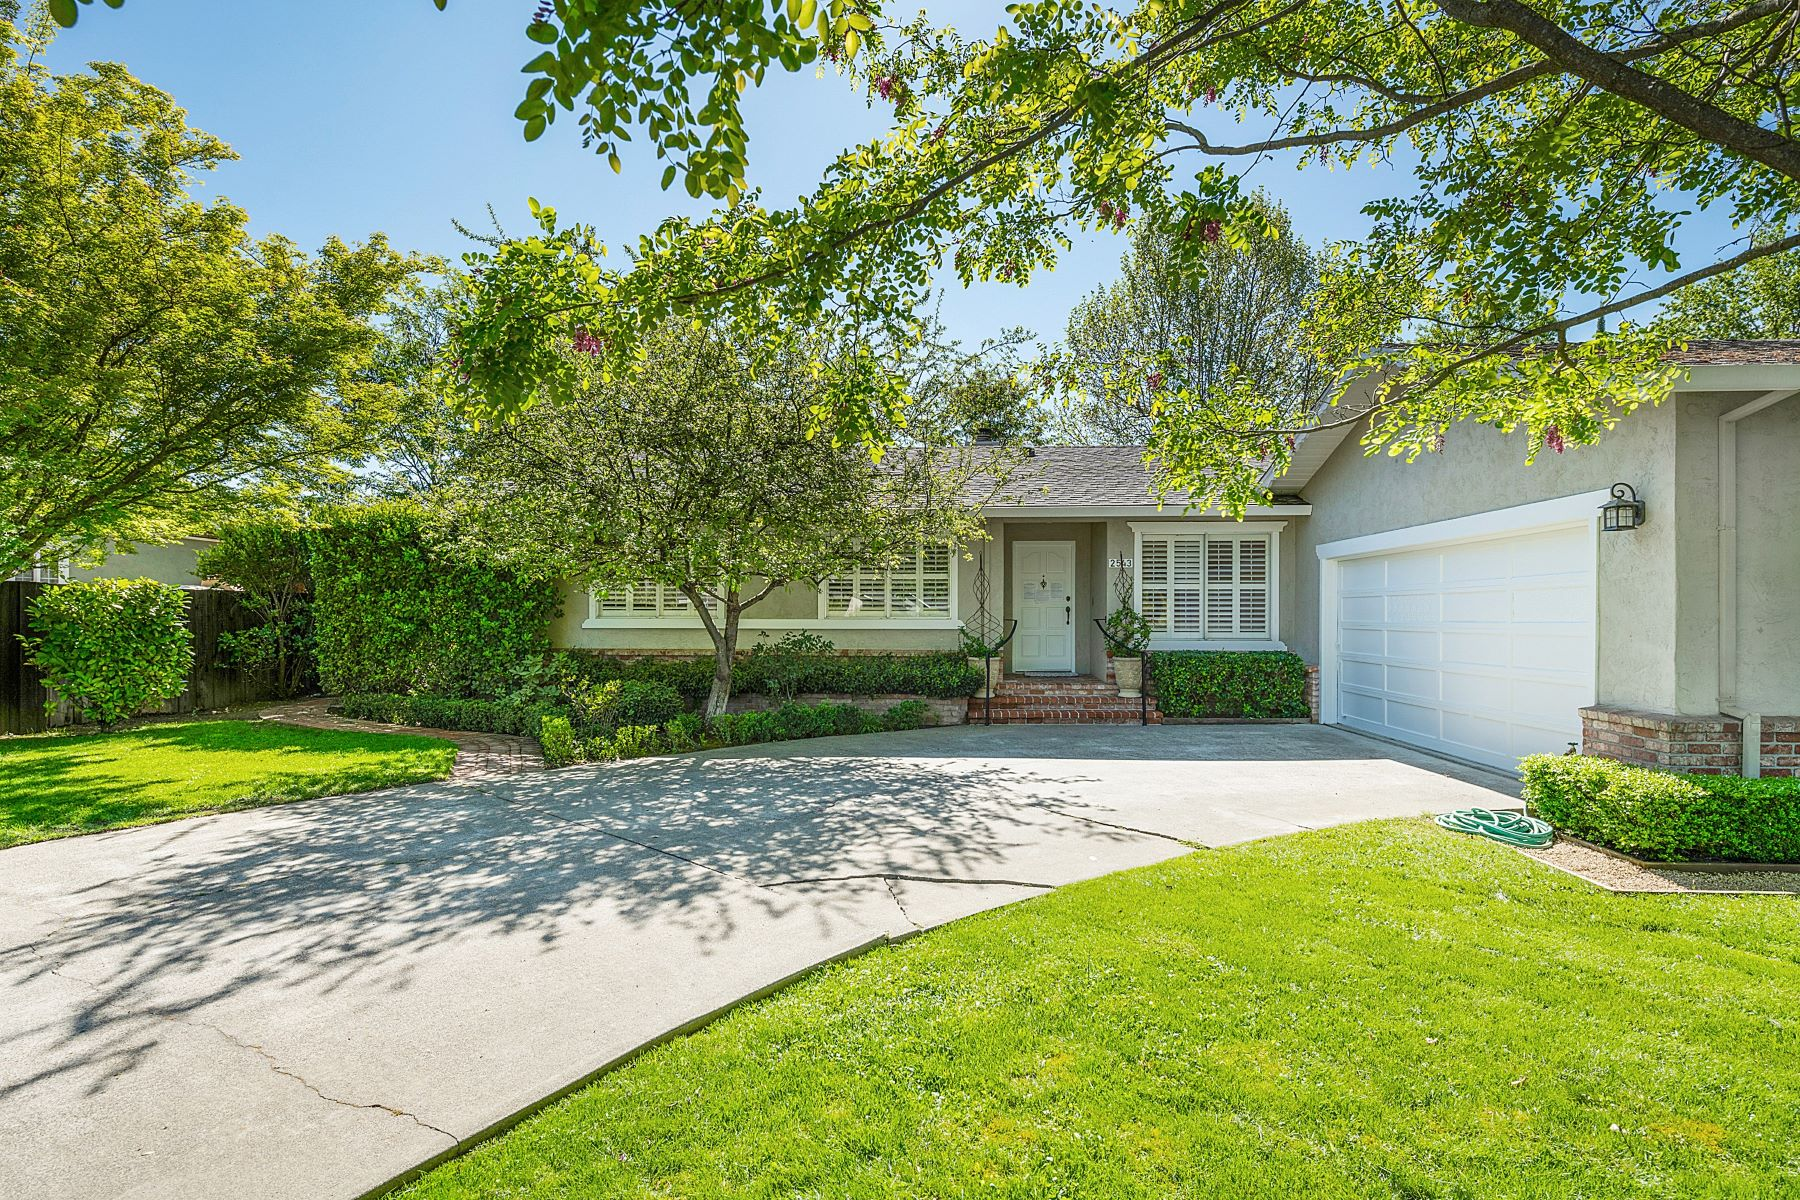 Single Family Homes for Active at Sun-filled Home with Private Gardens 2543 Pinot Way St. Helena, California 94574 United States